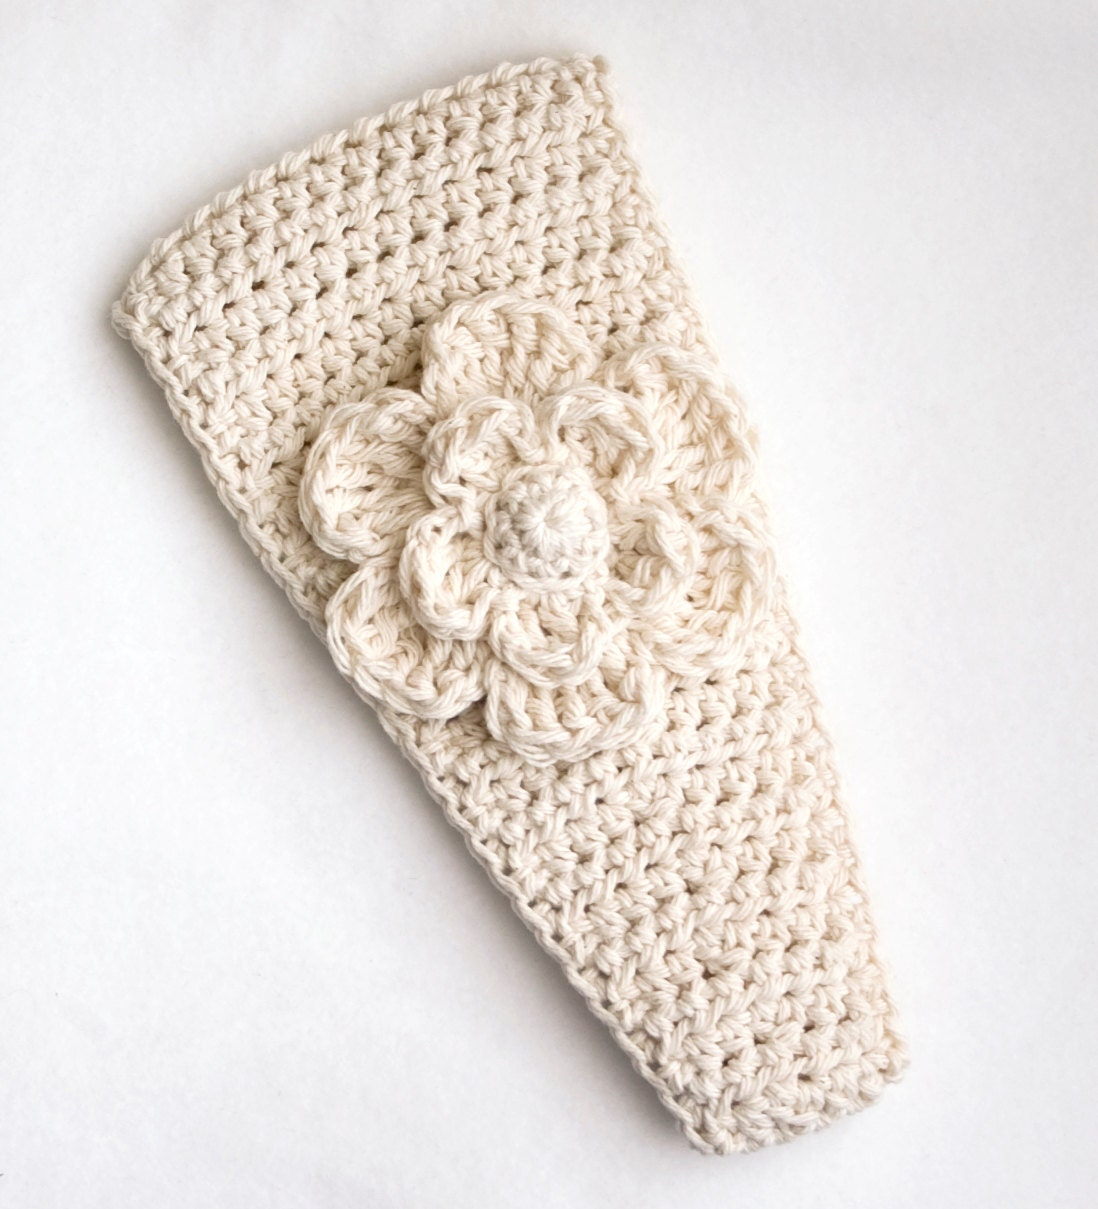 Baby Girl Espadrilles Crochet Pattern : ADULT Crochet Ear Warmer in Cream by beeziebee on Etsy